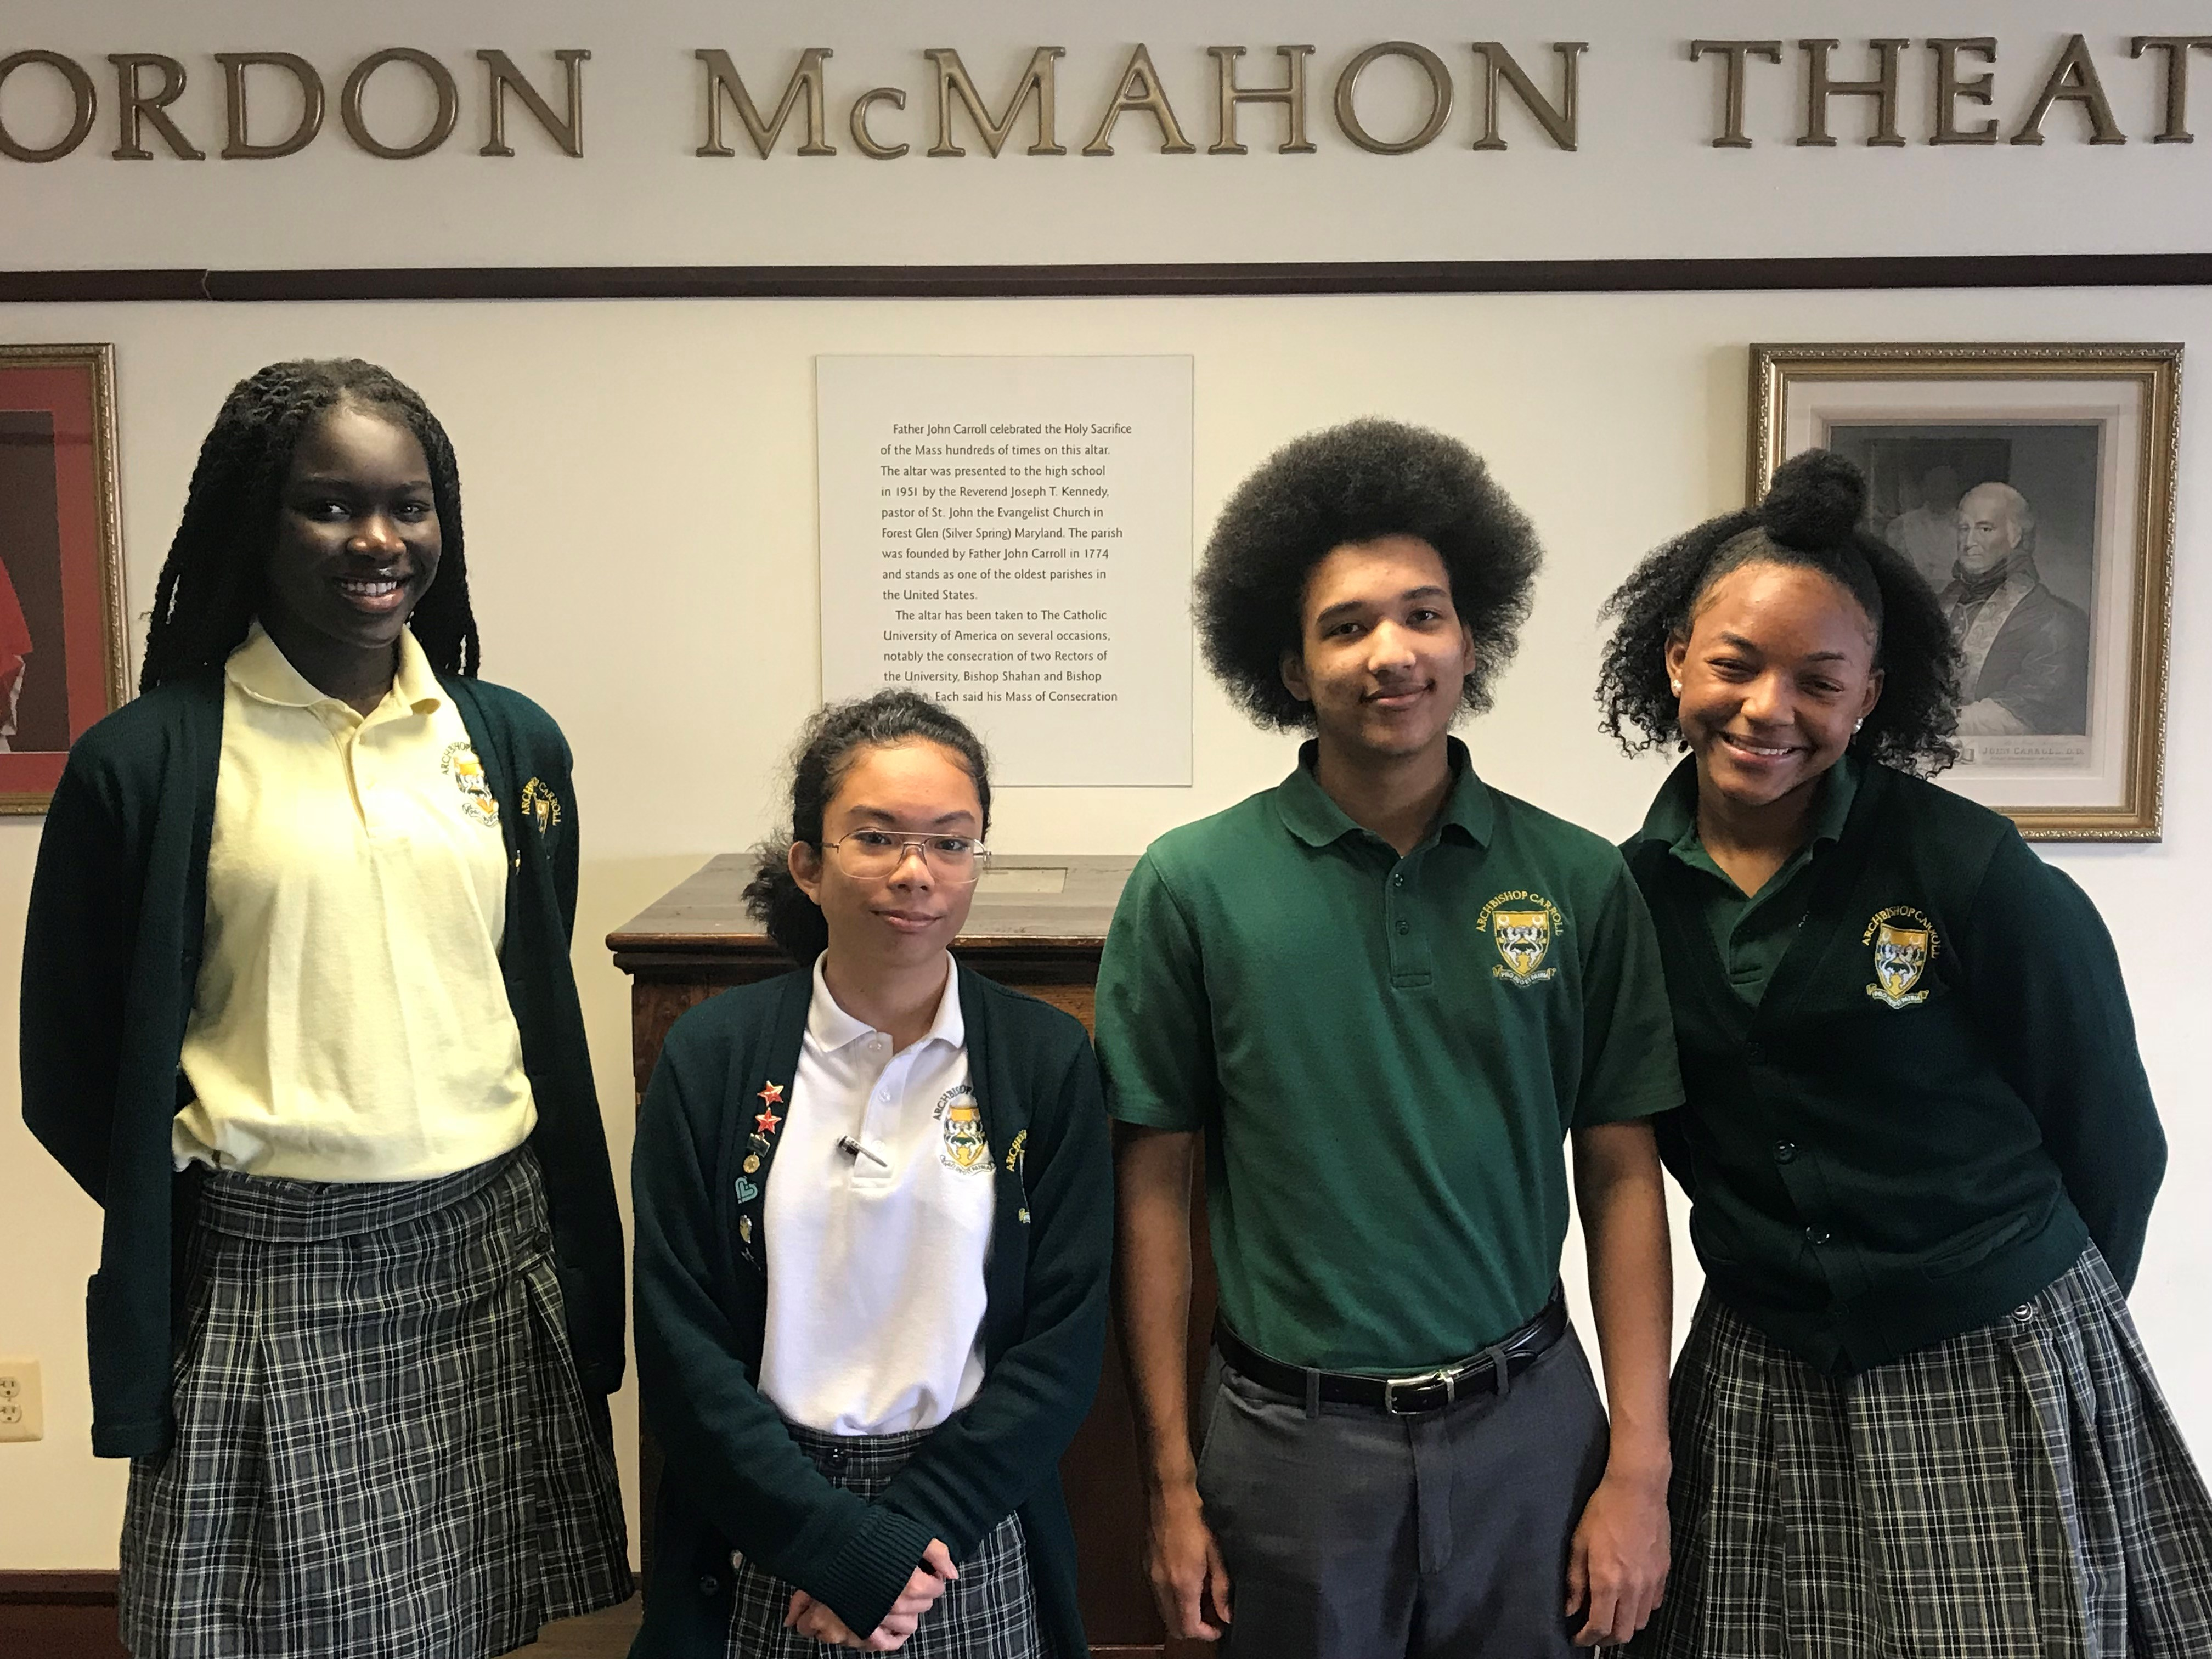 The Vaghi Scholarship winners at Archbishop Carroll High School are (from left to right): Maria Gakdeng (Class of 2021), Paula Valenzuela (Class of 2020), Avery Middleton (Class of 2020), and Tiffani Rae Pittman (Class of 2021). Not pictured: Greta Terry (Class of 2018).